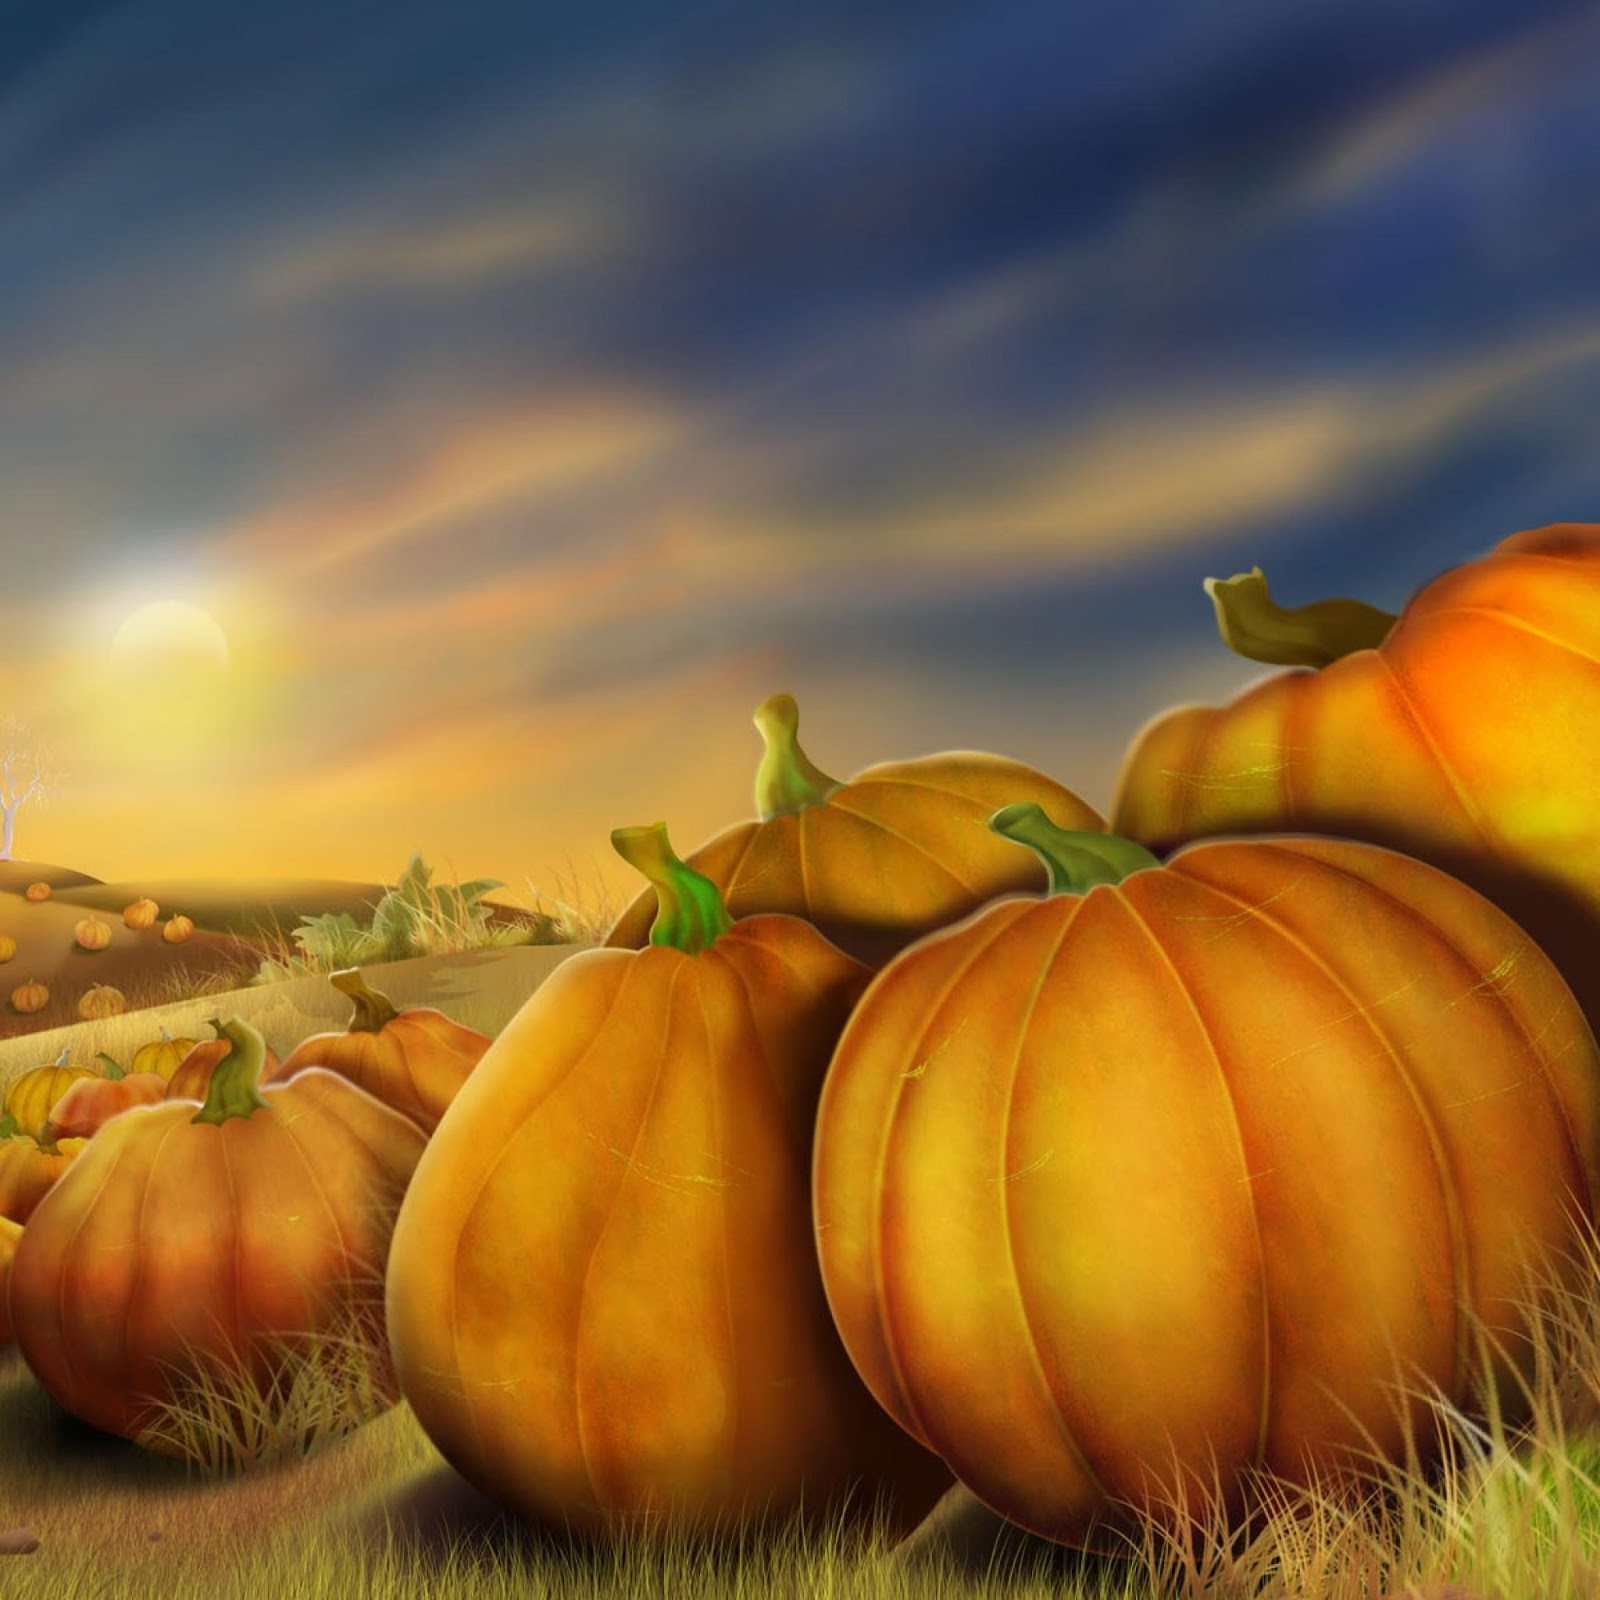 IPad Wallpapers: Free Download Thanksgiving IPad